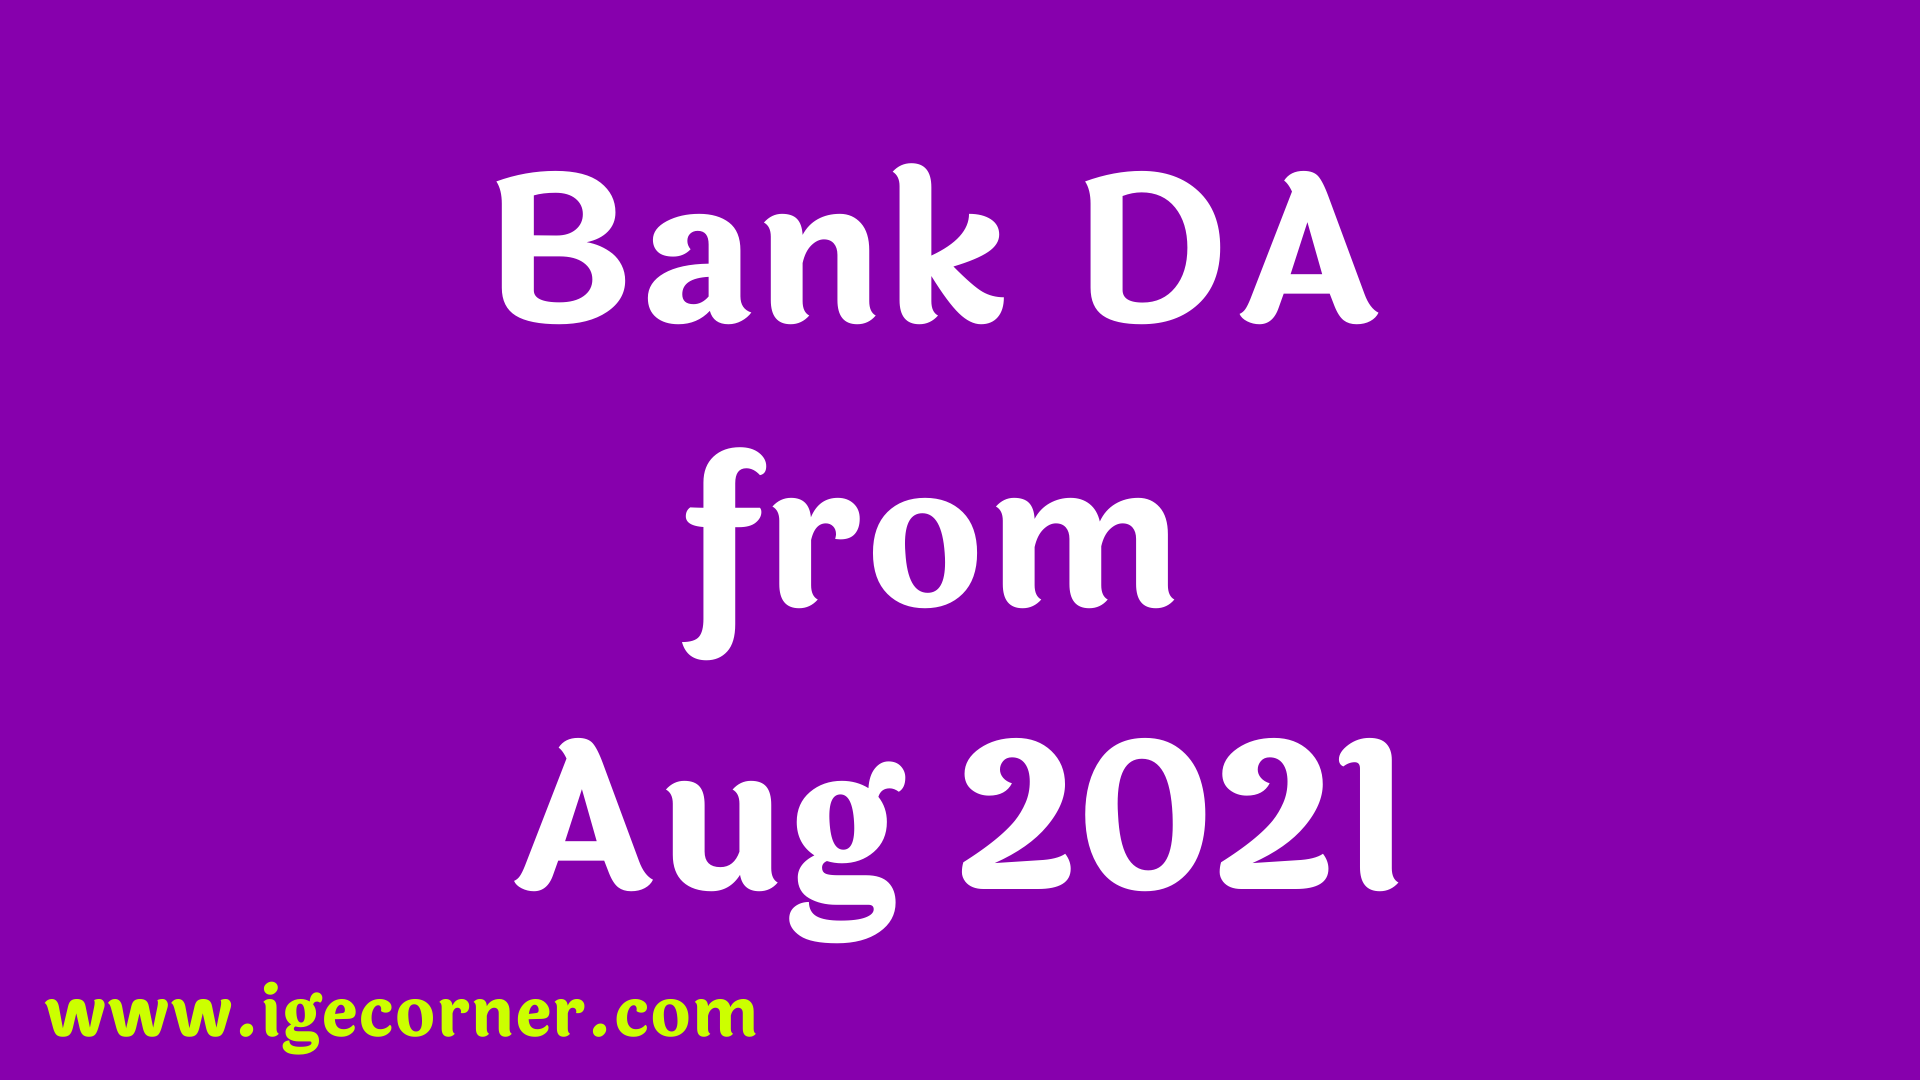 Expected DA for Bankers from August 2021